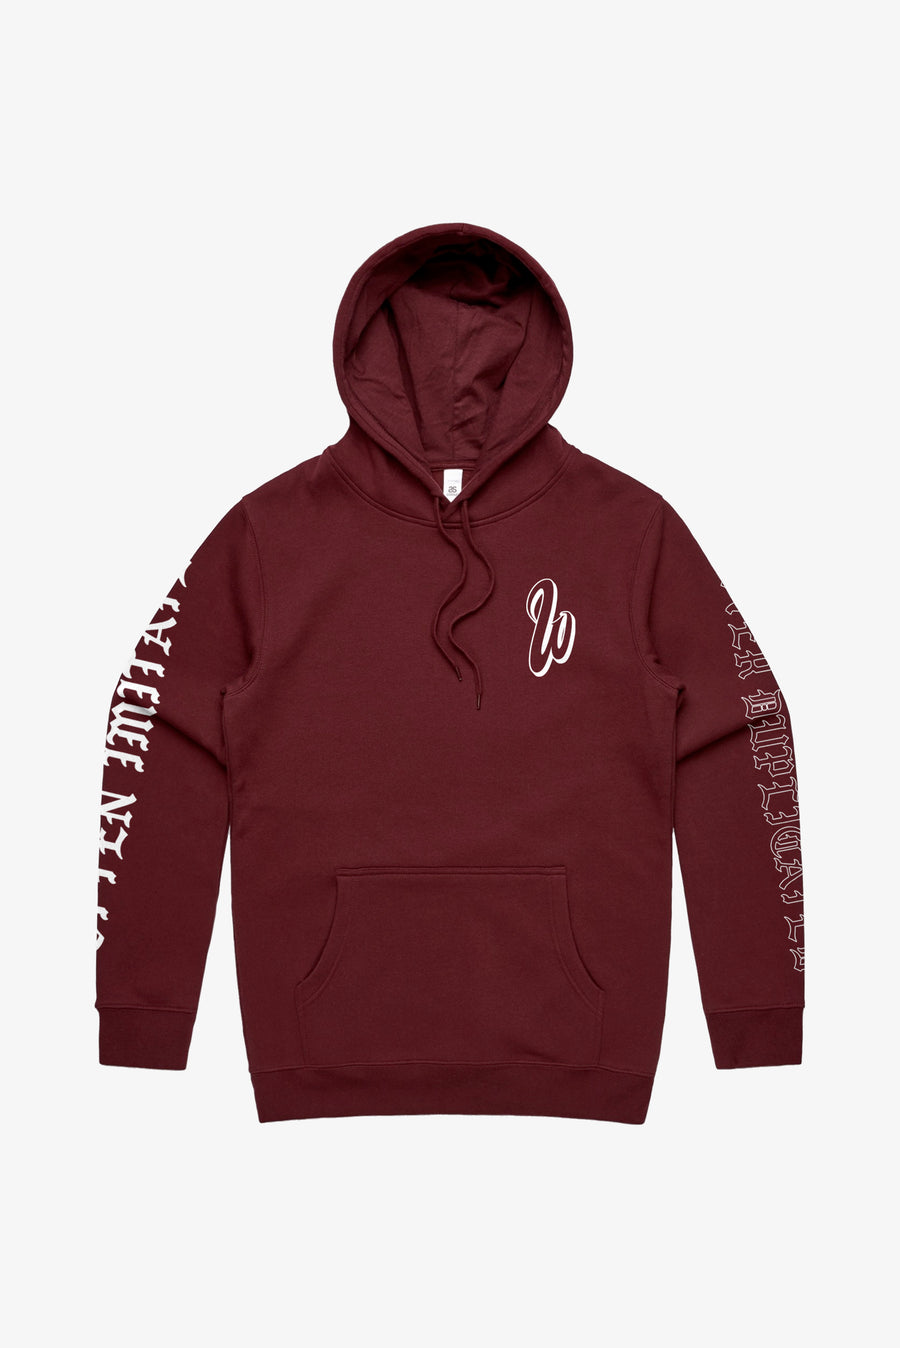 Often Imitated Hoodie Maroon